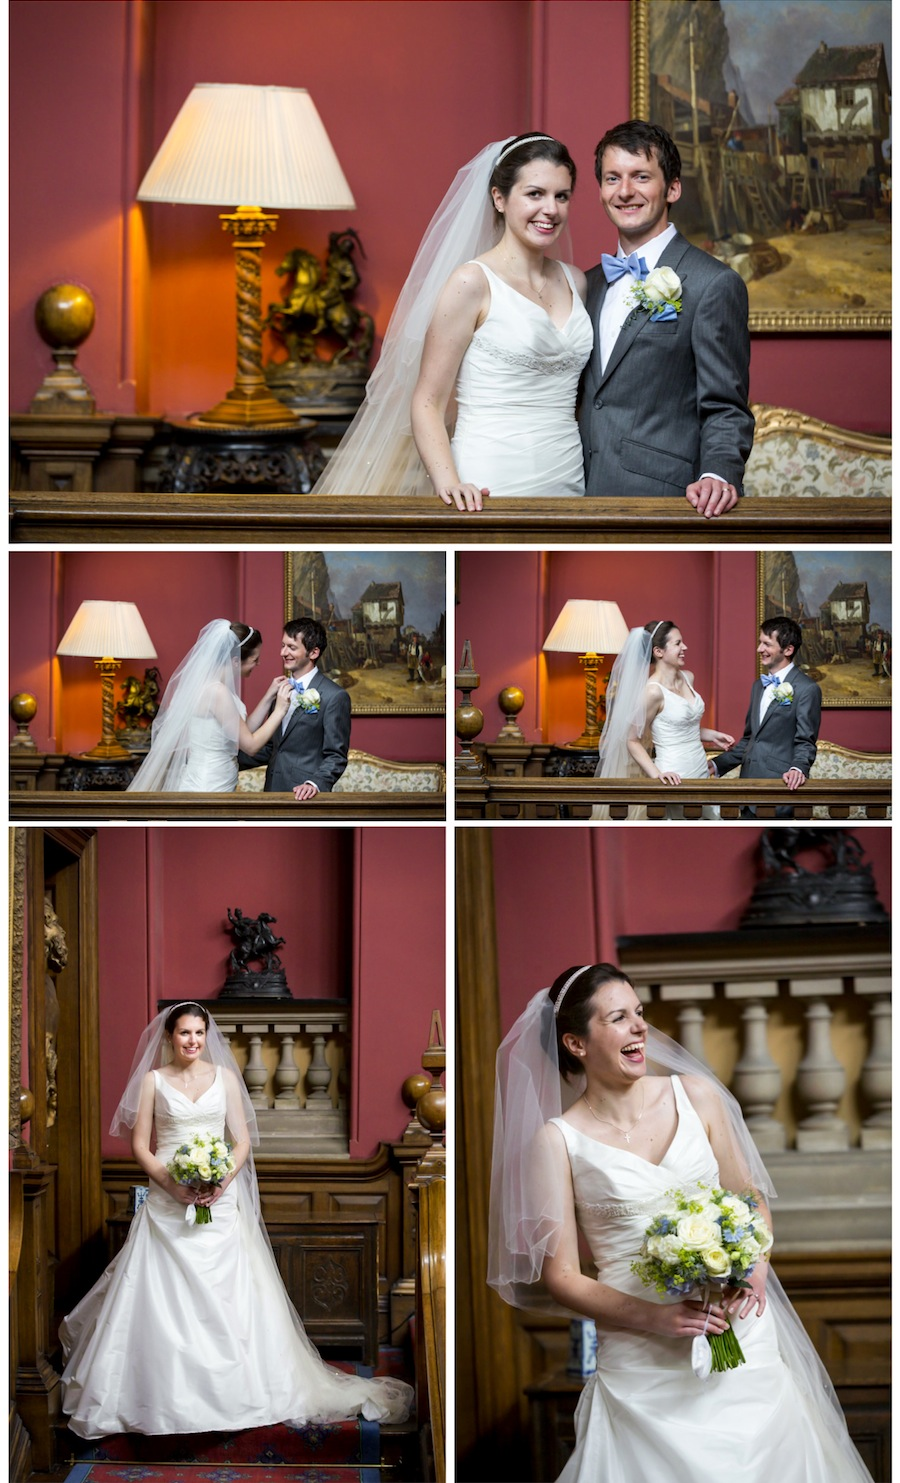 wedding chilston park hotel